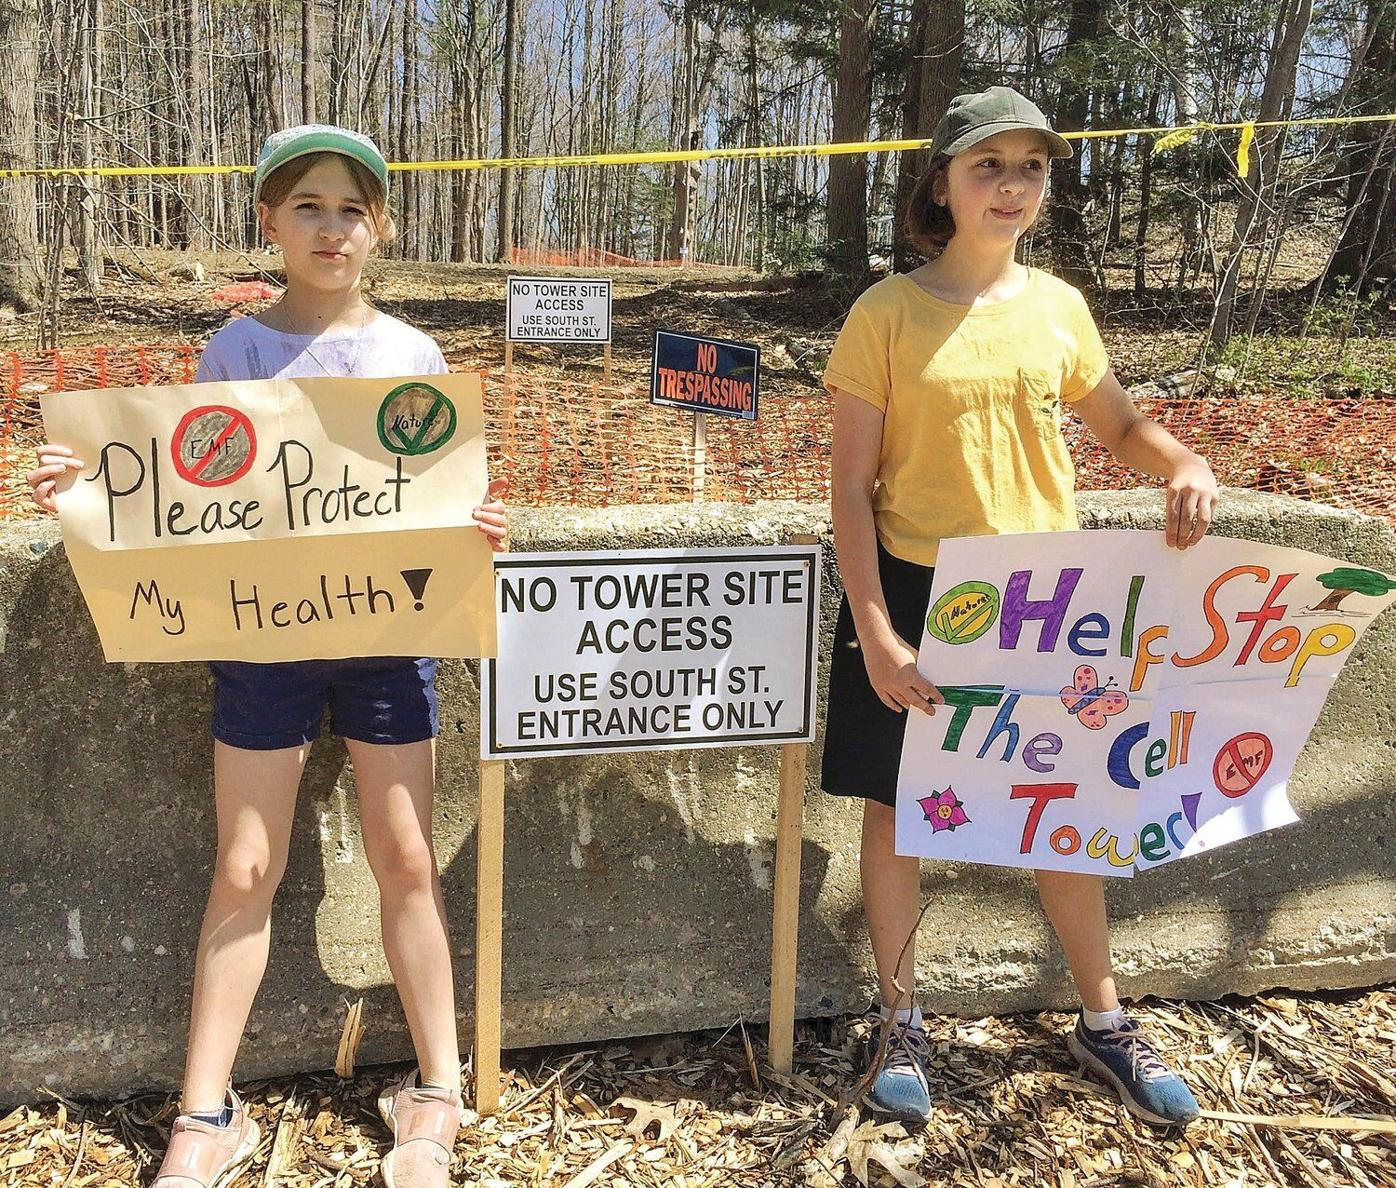 Unhappy neighbors await ruling on Pittsfield cell tower (copy)